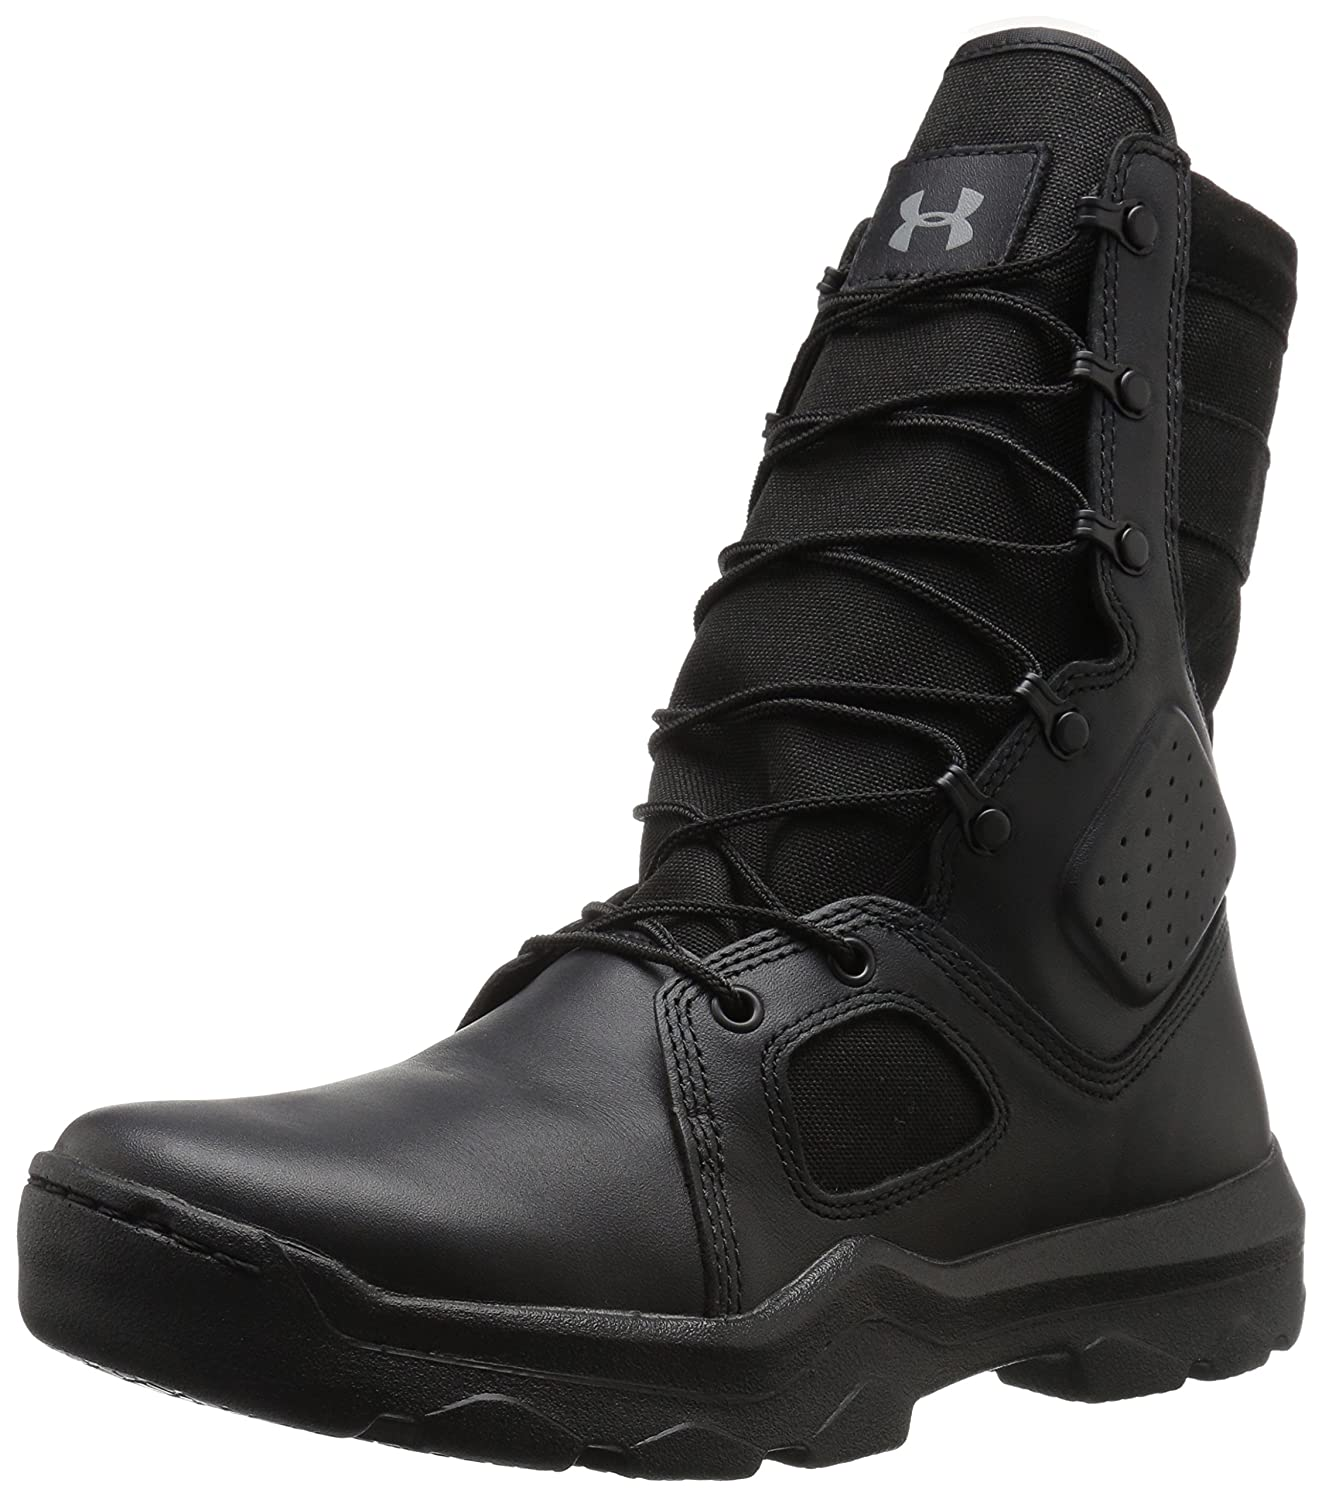 3fa49223358 Under Armour Men's Fnp Military and Tactical Boot